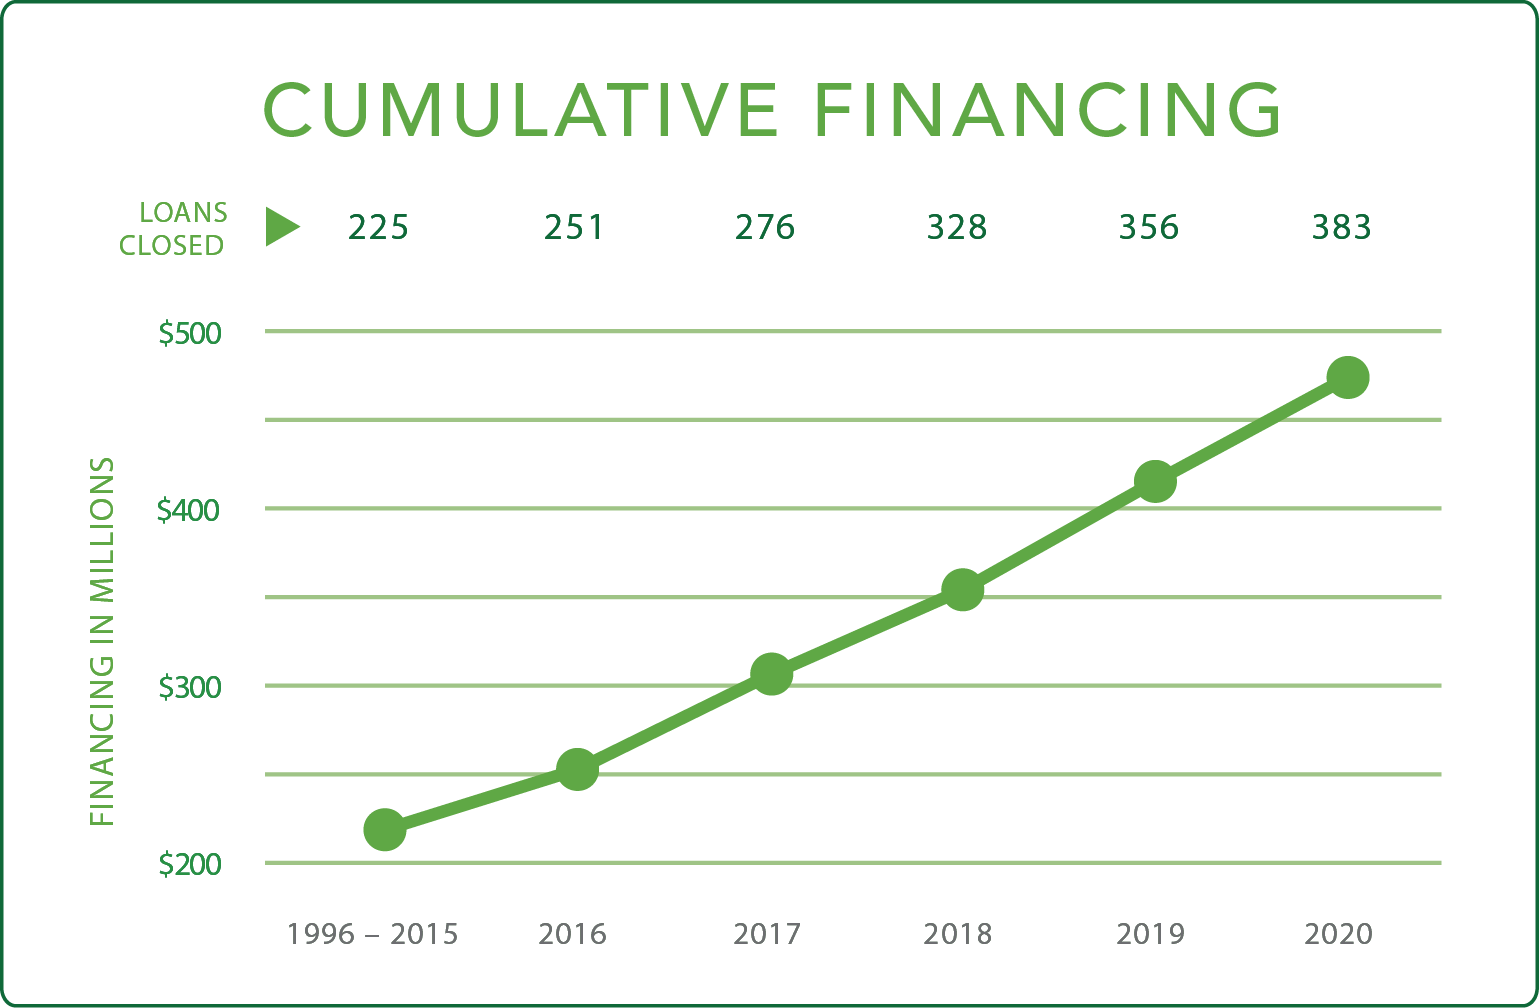 FCLF Cumulative Financing through 2020